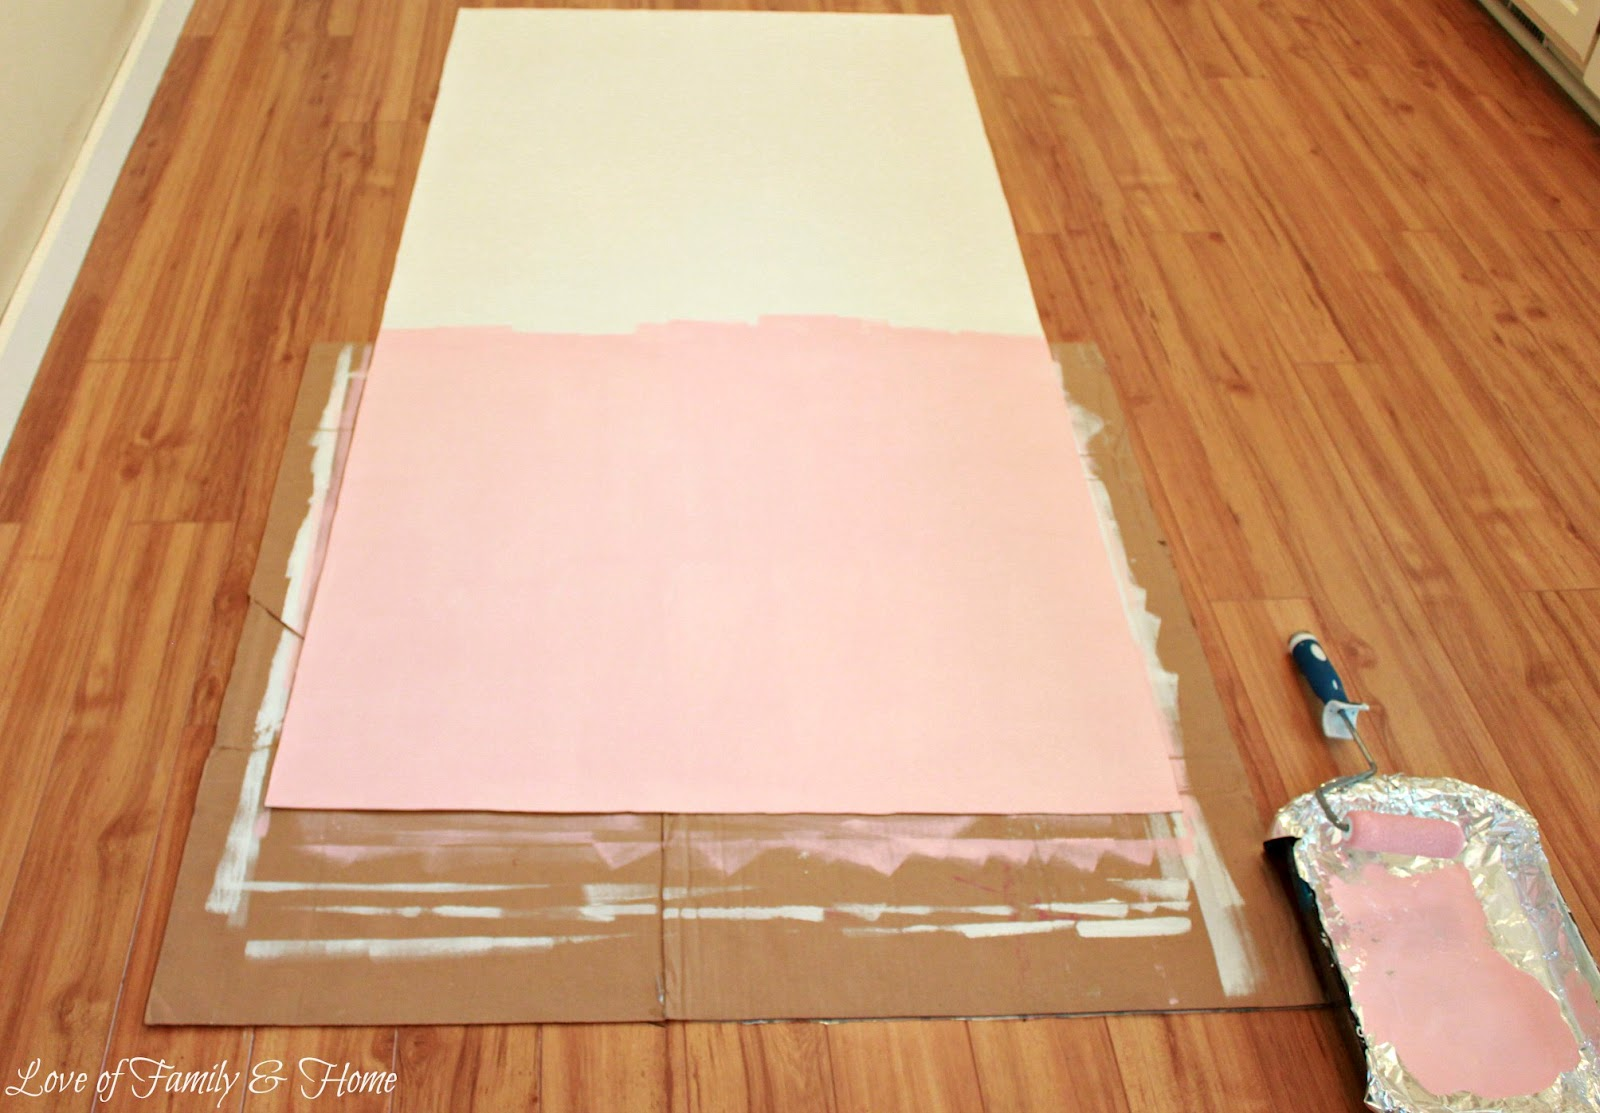 Storage amp organisation home office products housekeeping flooring baby - How To Paint A Rug Using Vinyl Flooring